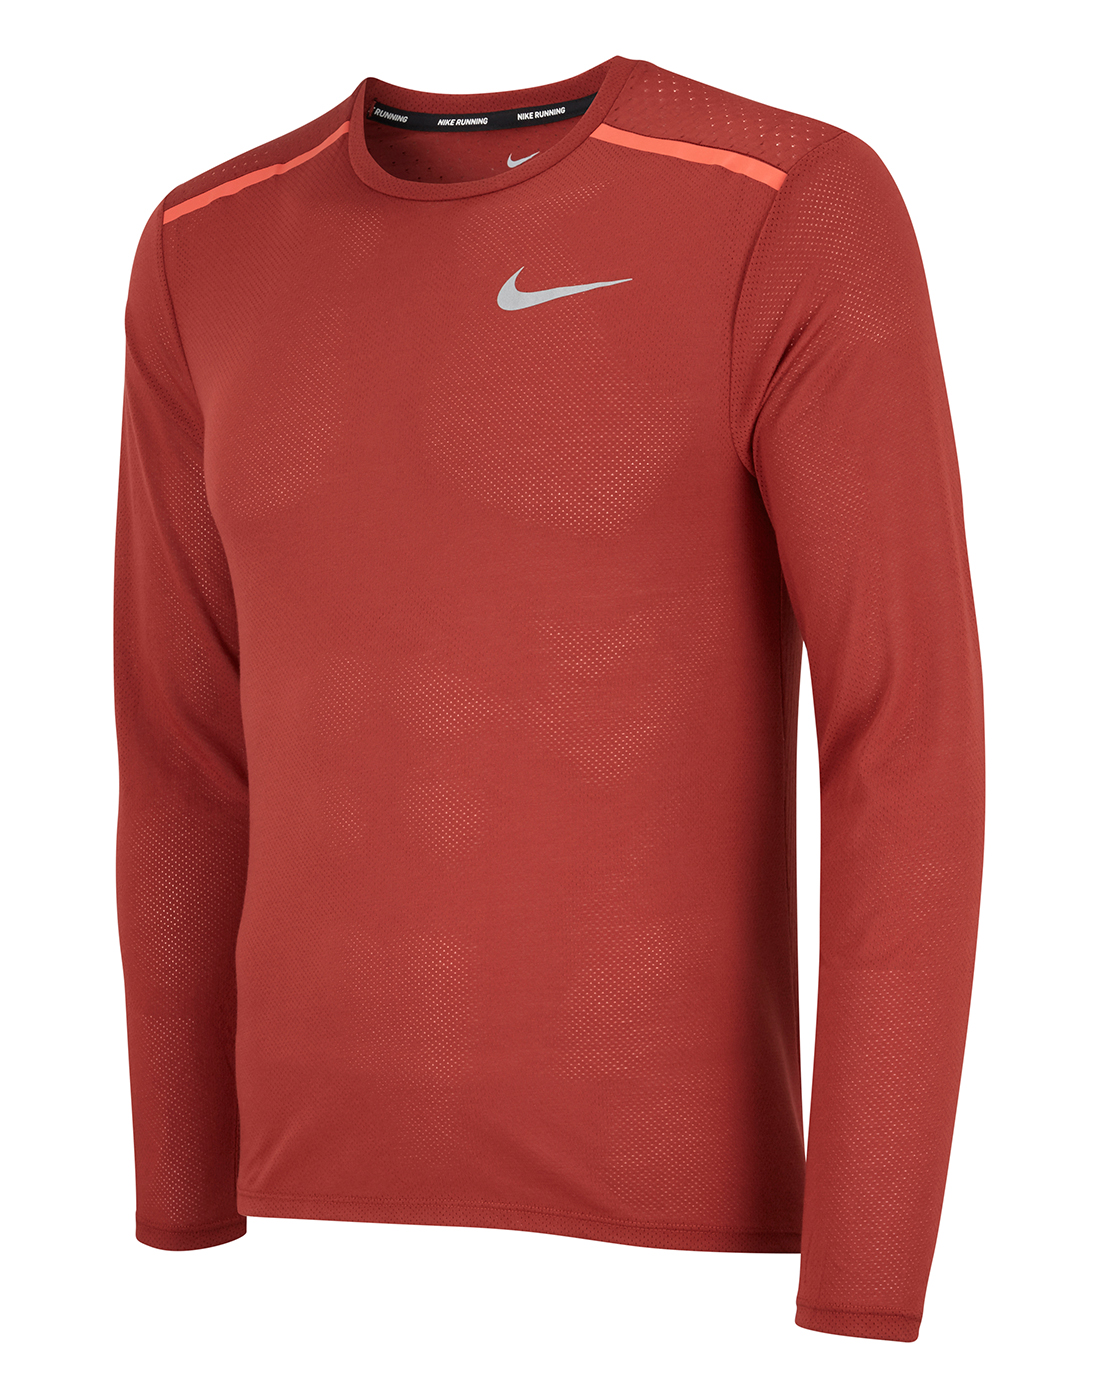 c461fa0b3271 Men's Red Nike Breathe Long Sleeve Running Top | Life Style Sports